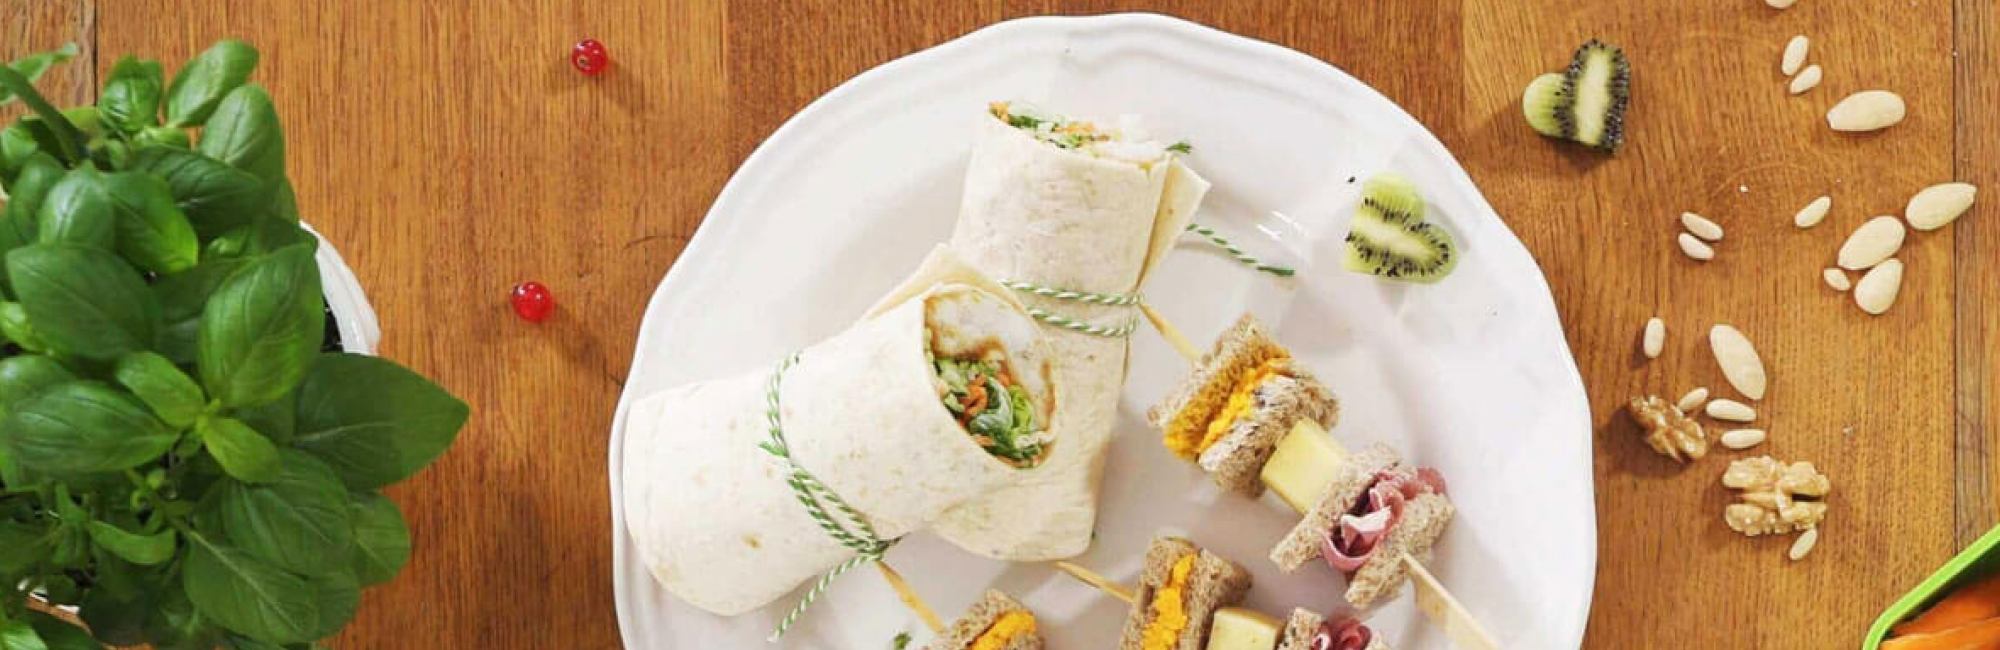 Wrap, gepaneerde vis, courgetti, wortelslierten, sla